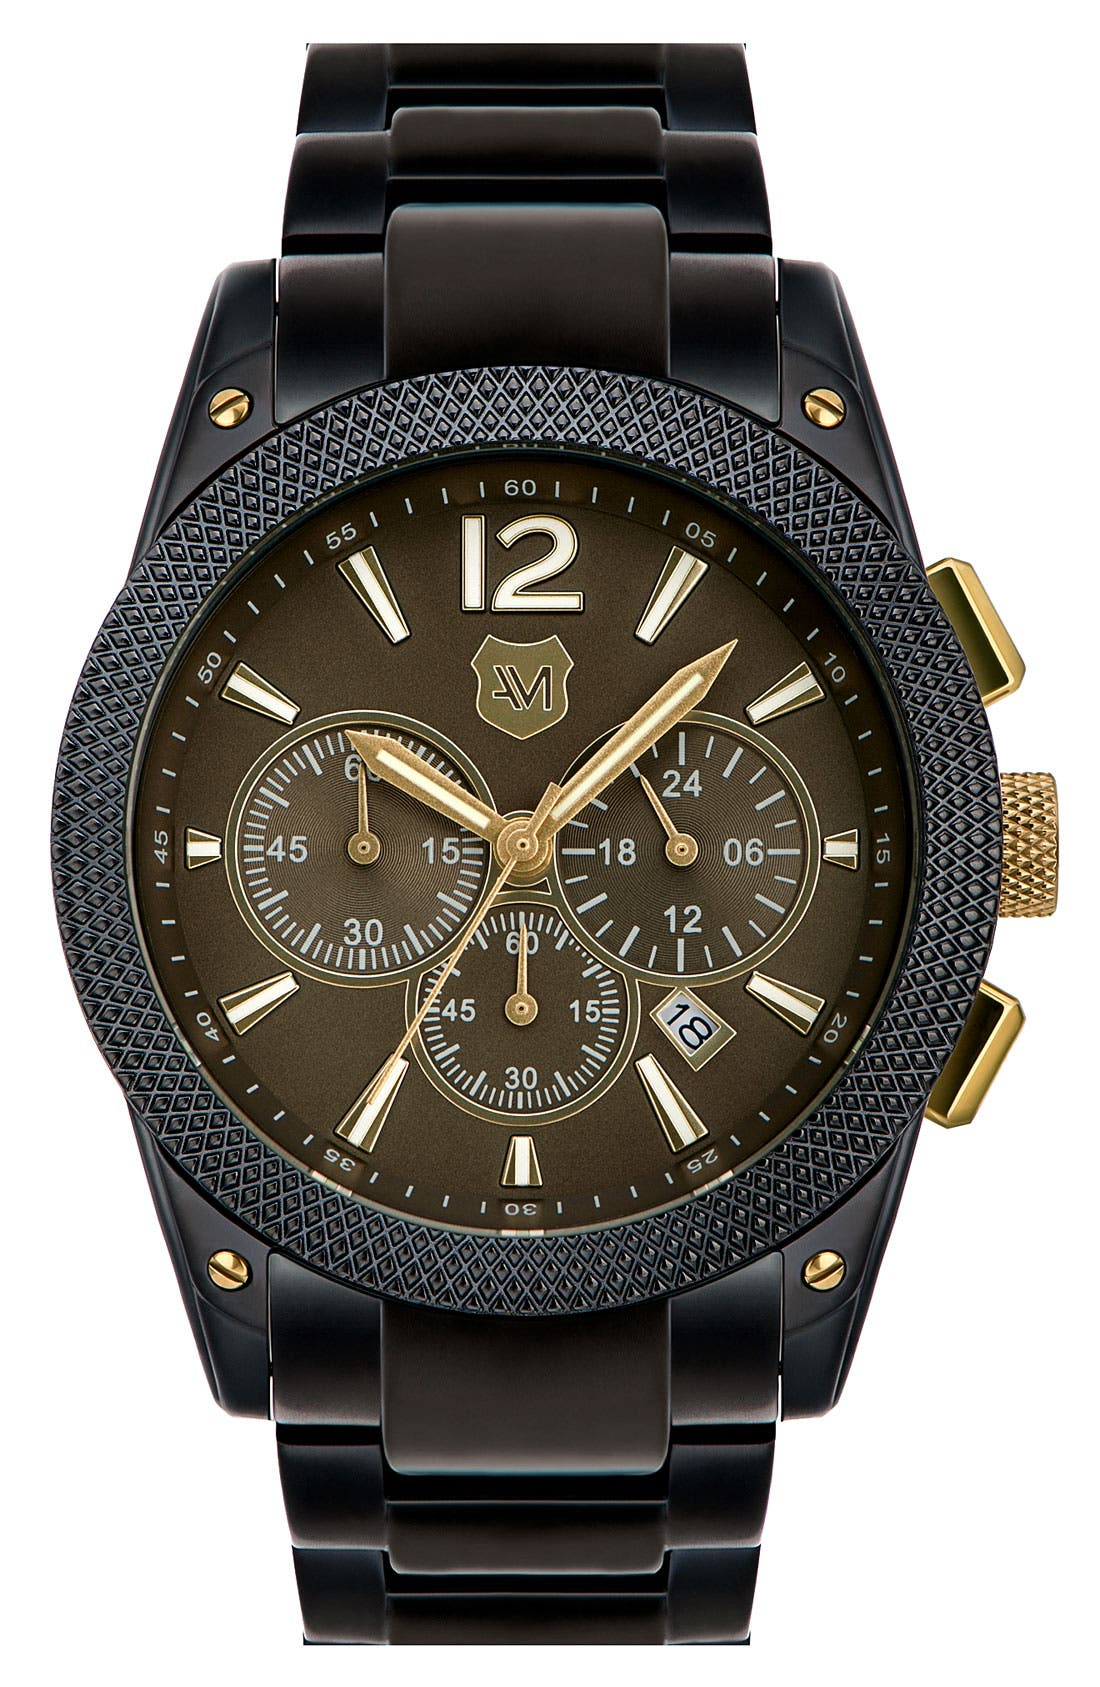 Alternate Image 1 Selected - Andrew Marc Watches 'Heritage Pilot' Chronograph Bracelet Watch, 45mm